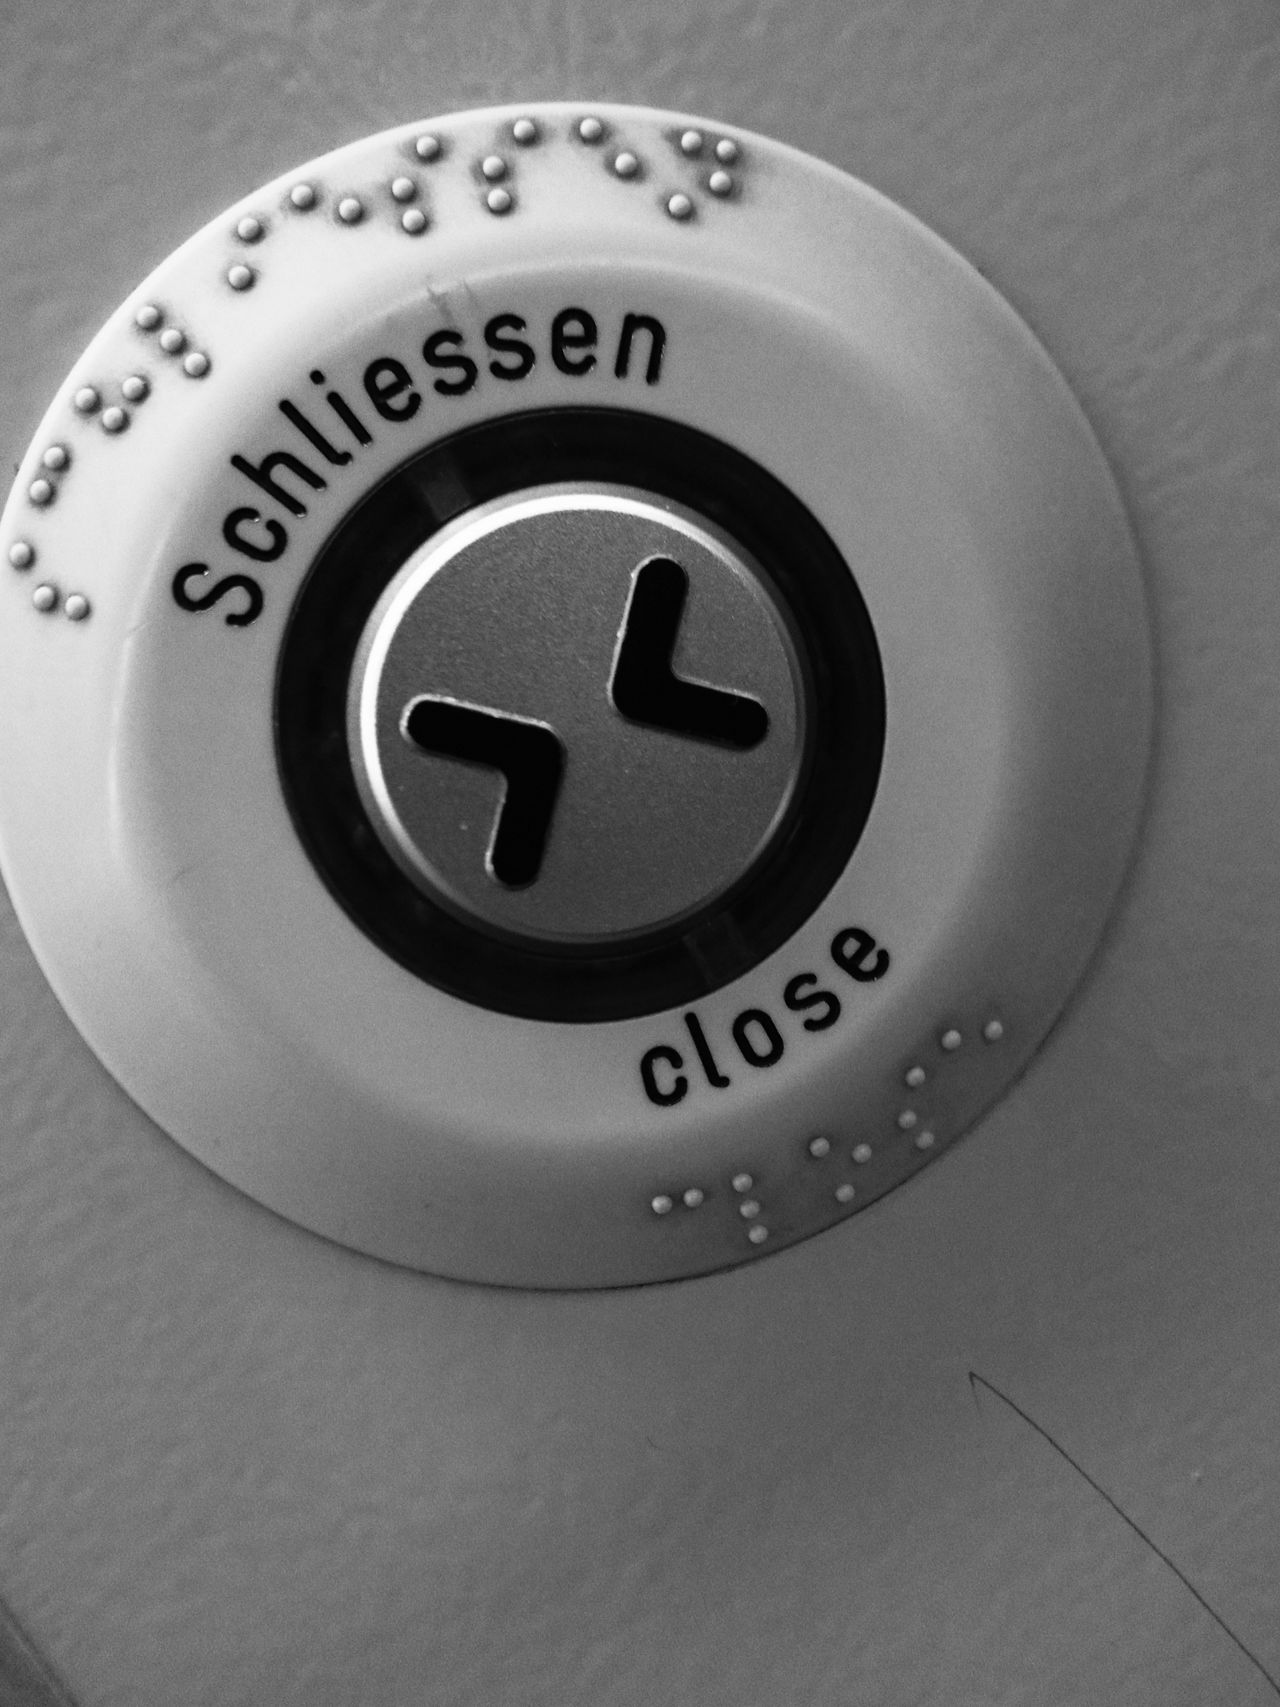 Number No People Old-fashioned Retro Styled Indoors  Communication Close-up Technology Day Clock Face Braille Writing Braille Sign Close The Door Button Public Transportation Exit Berlin Life BVG - Berliner Verkehrsgesellschaft Discover Berlin